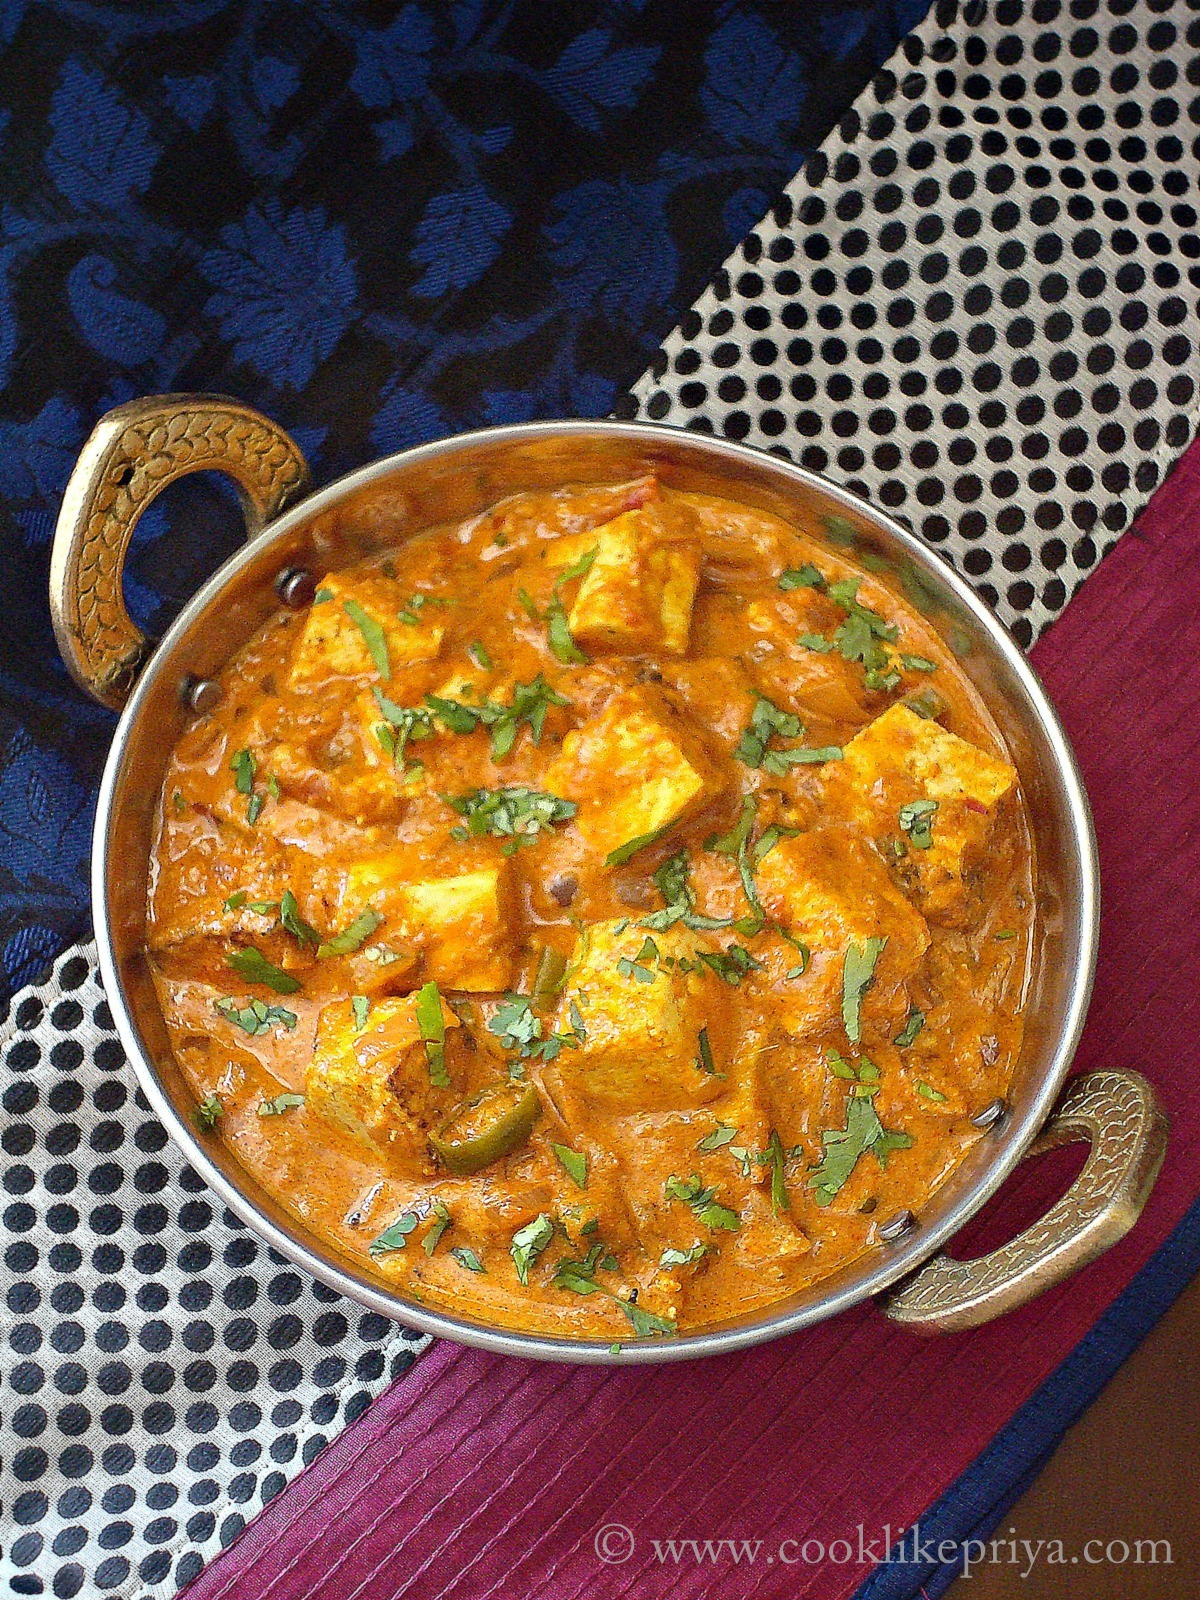 Tofu Indian Curry recipe